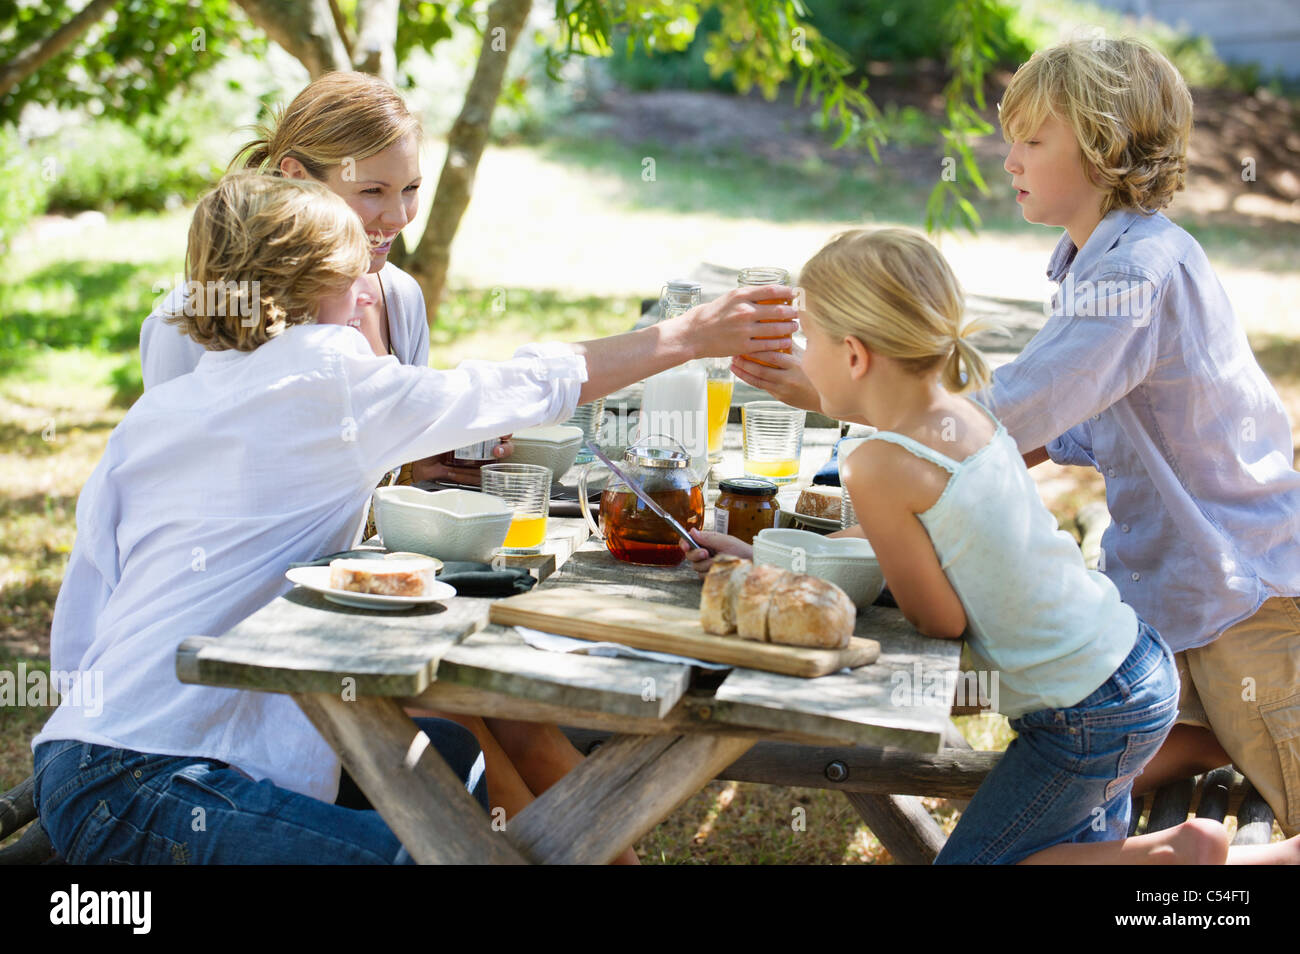 Family having food at front or back yard - Stock Image